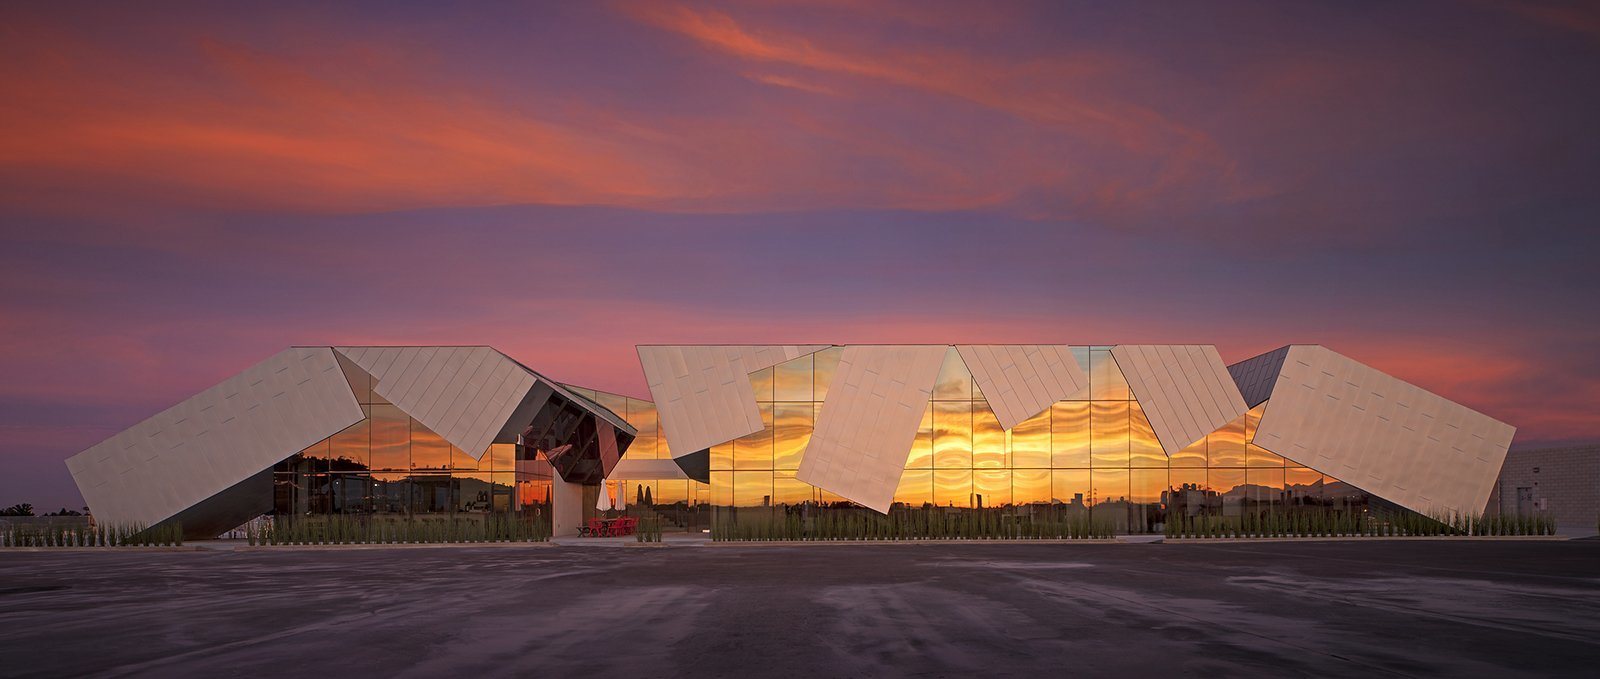 Pterodactyl by Eric Owen Moss Architects – Photography by Tom